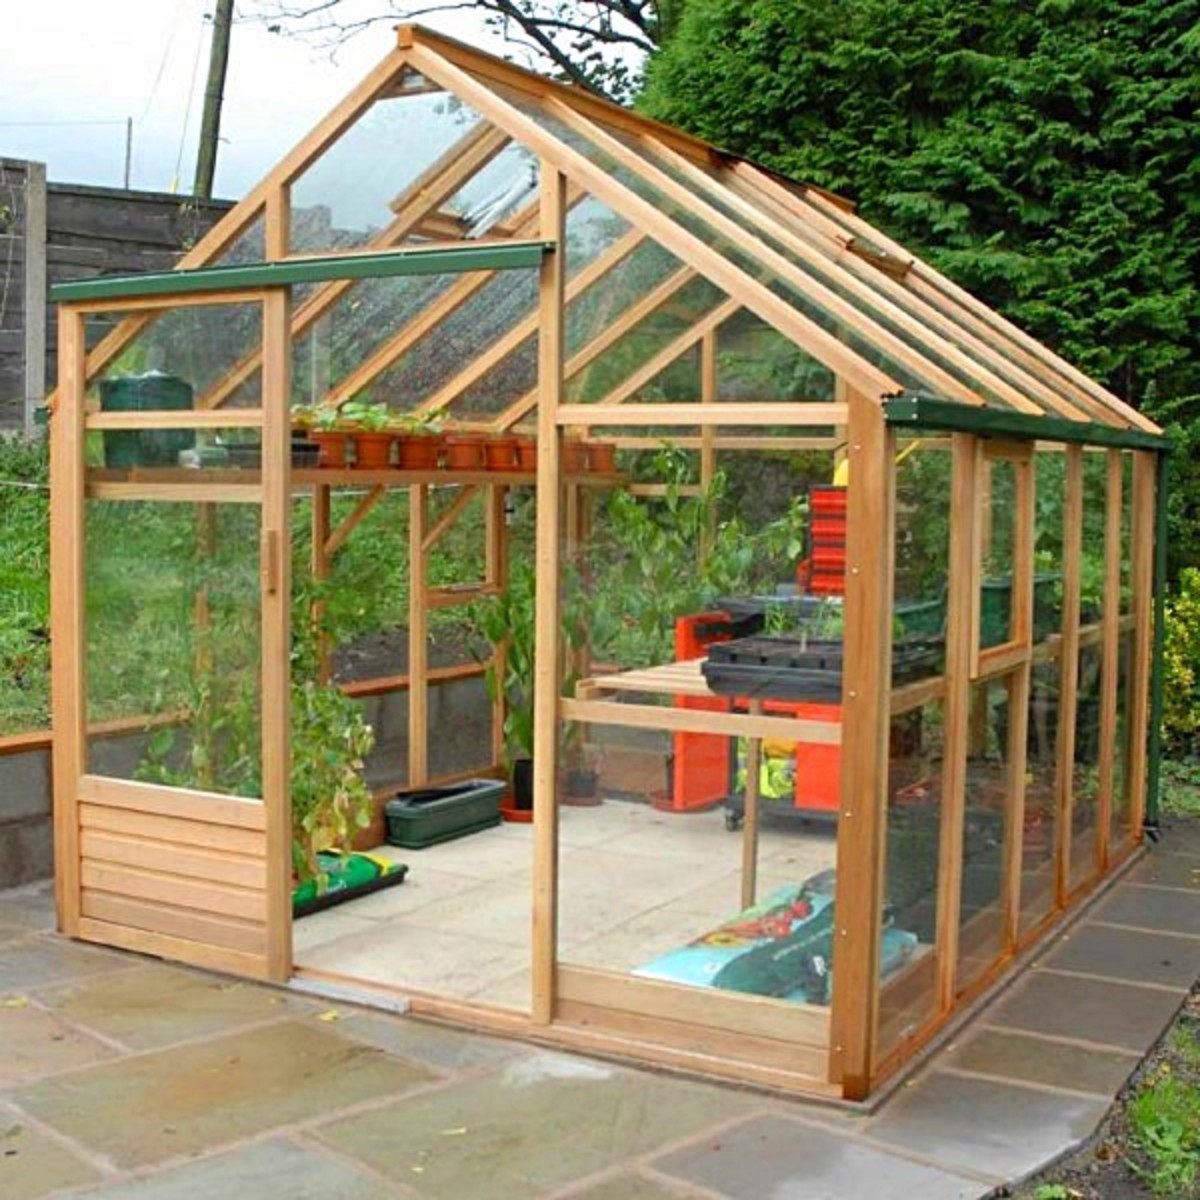 Greenhouse made of wood